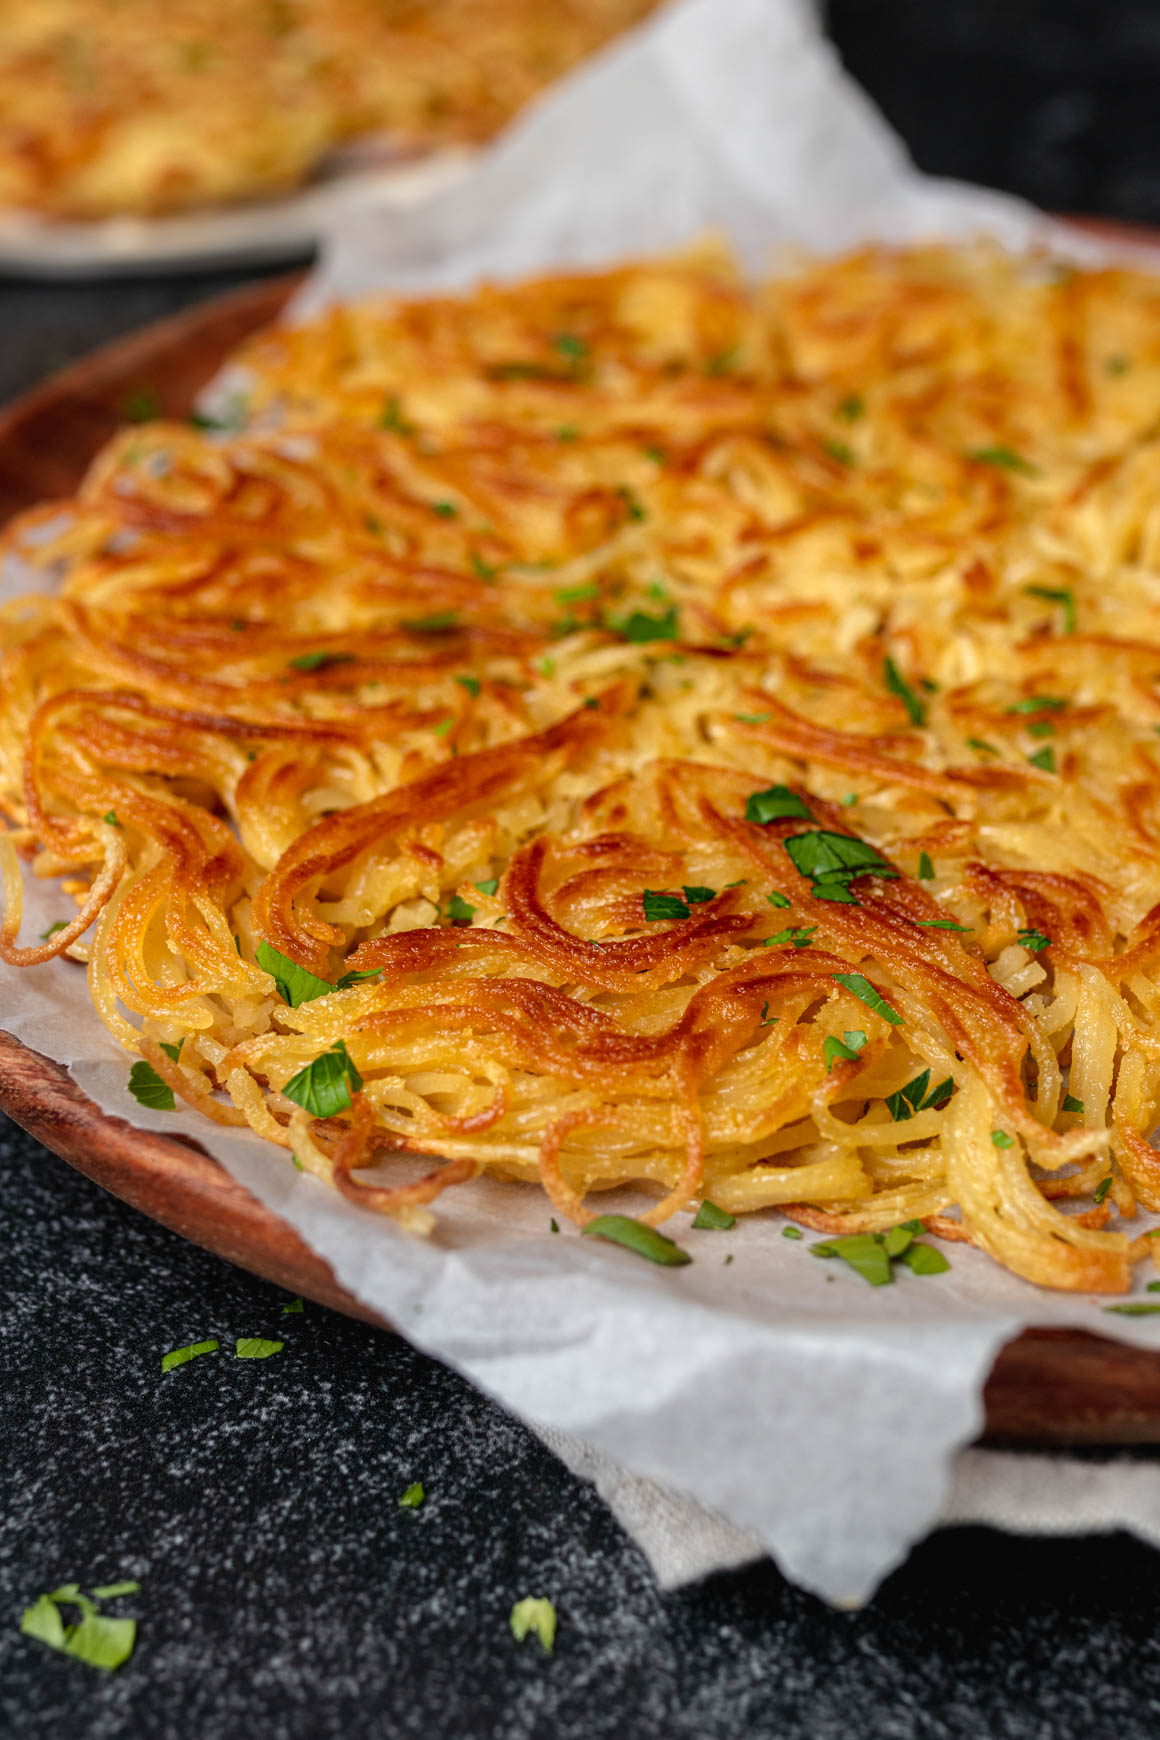 Side shot of a vermicelli omlette that is golden brown and sprinkled with parsley on a piece of parchment on a wood plate. You can see a second one blurry in the background.